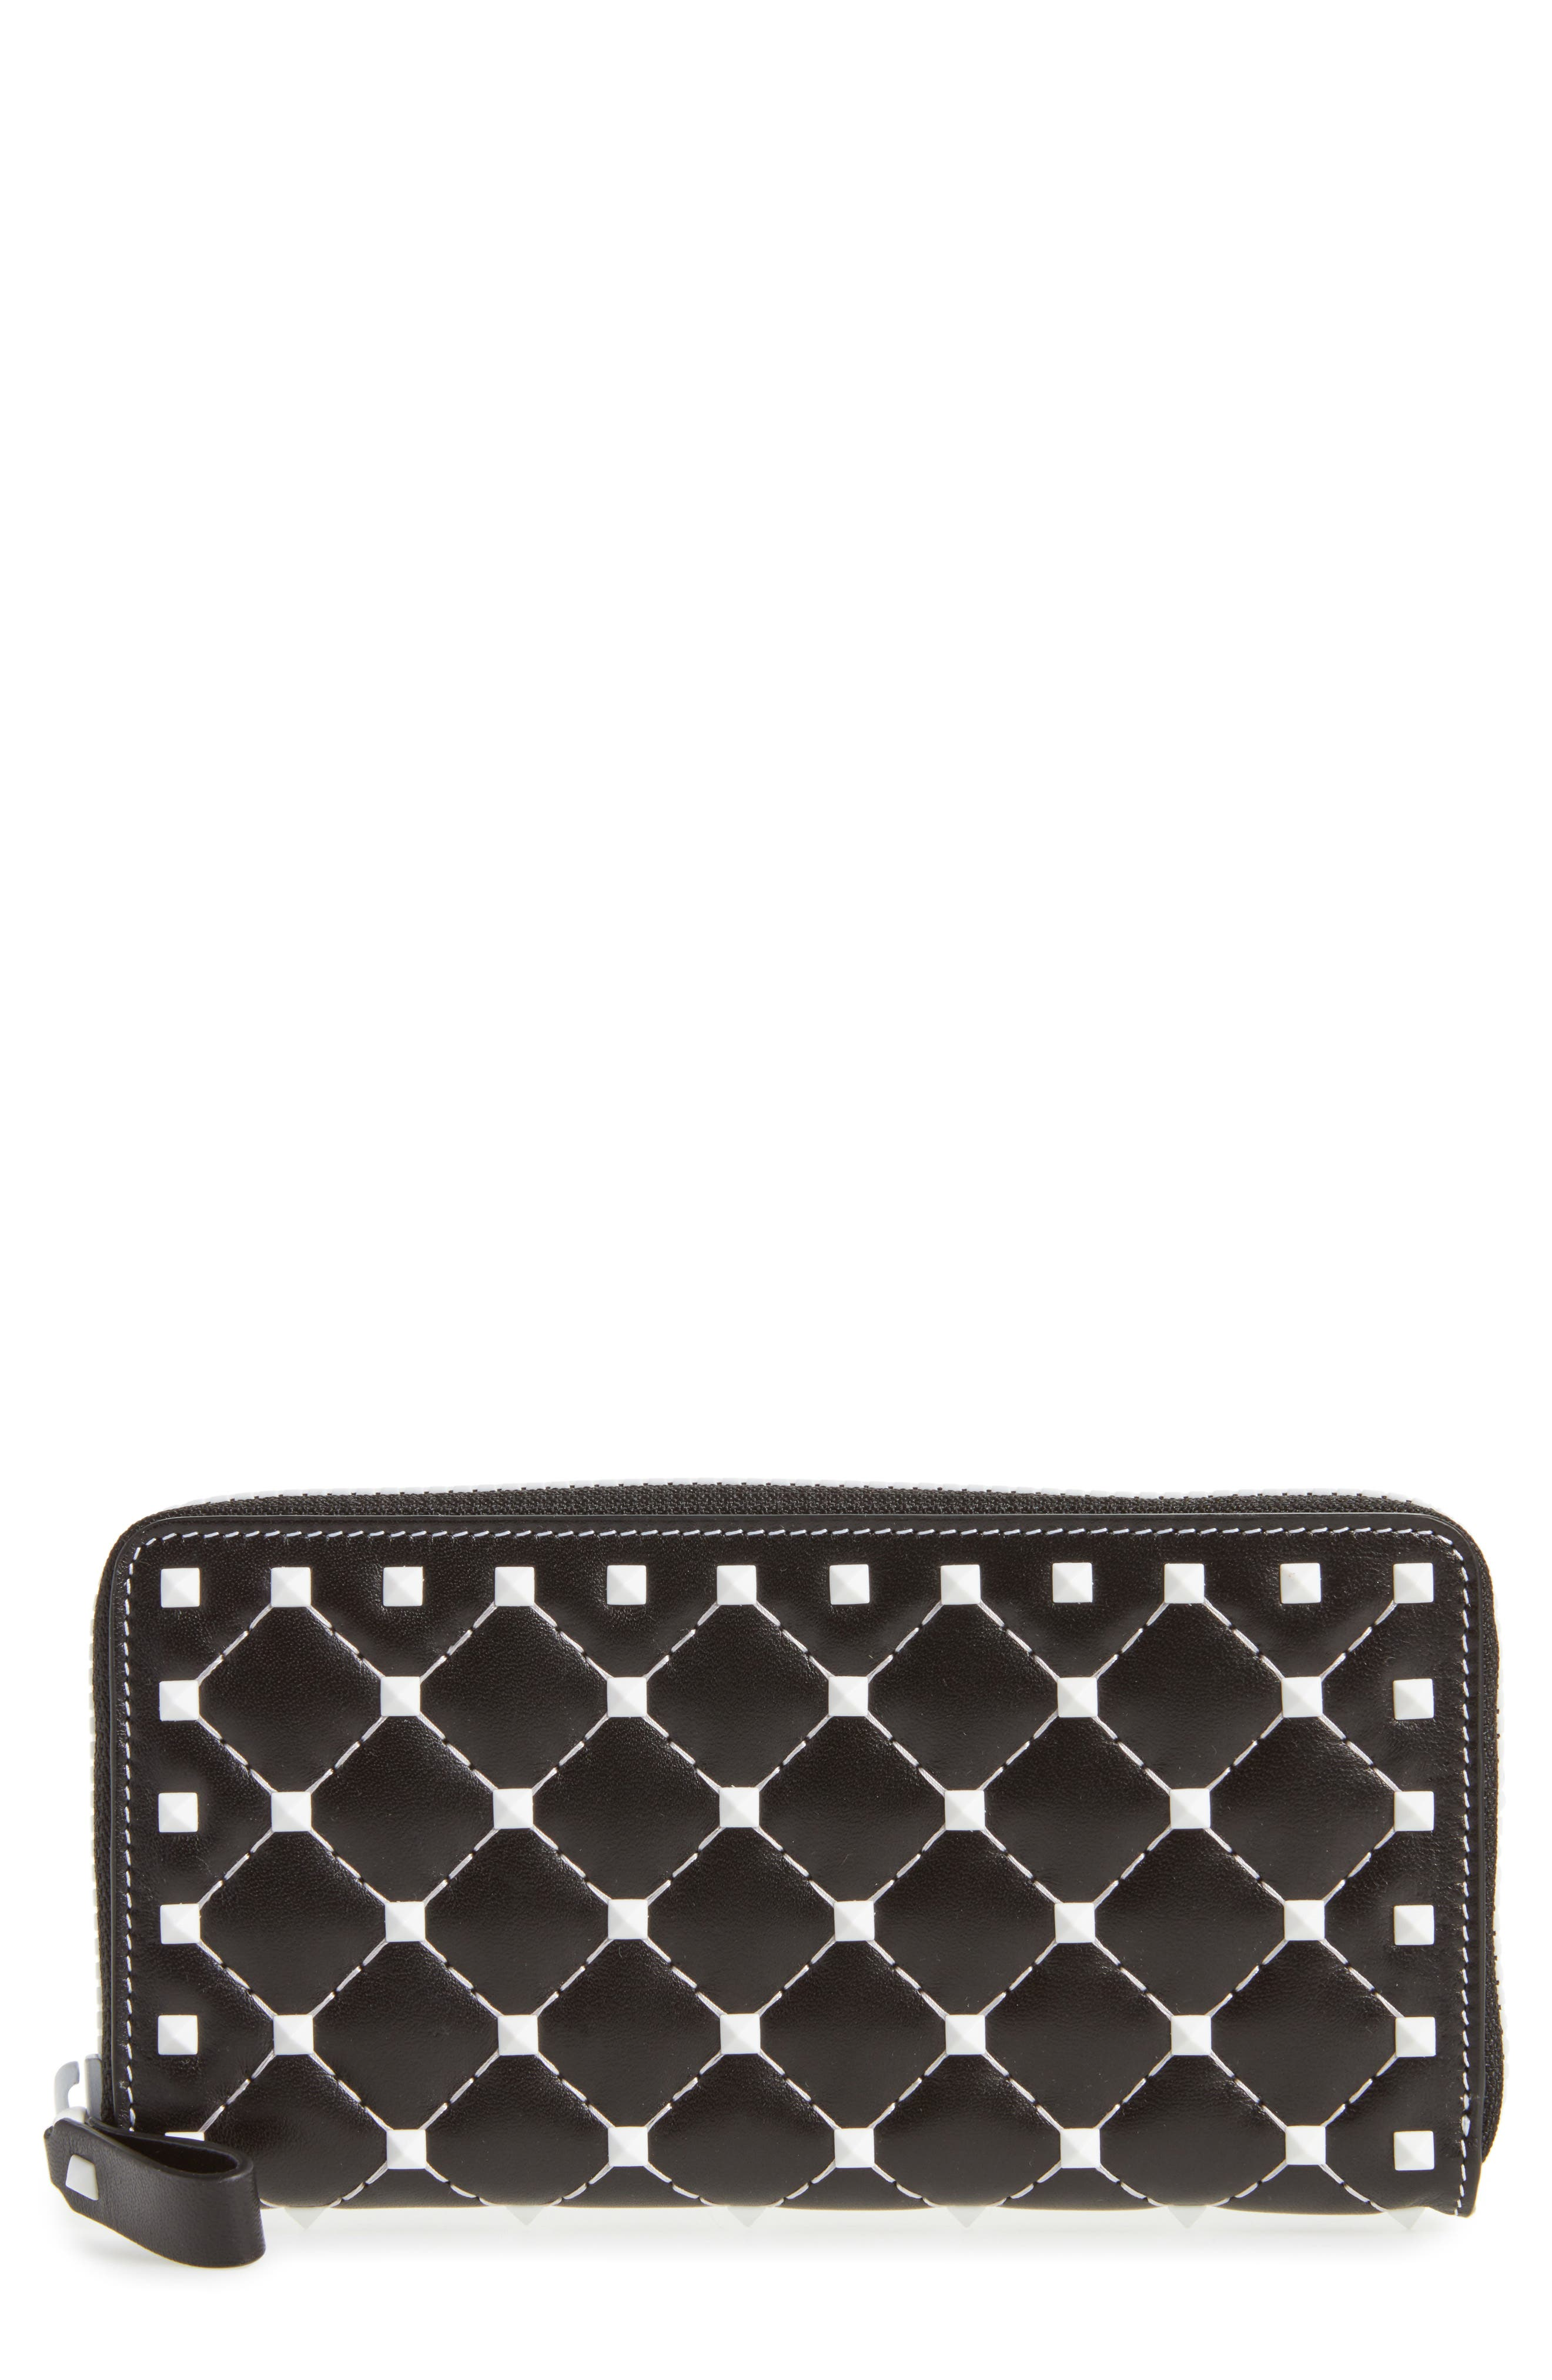 Rockstud Spike Zip Around Leather Wallet,                             Main thumbnail 1, color,                             Black